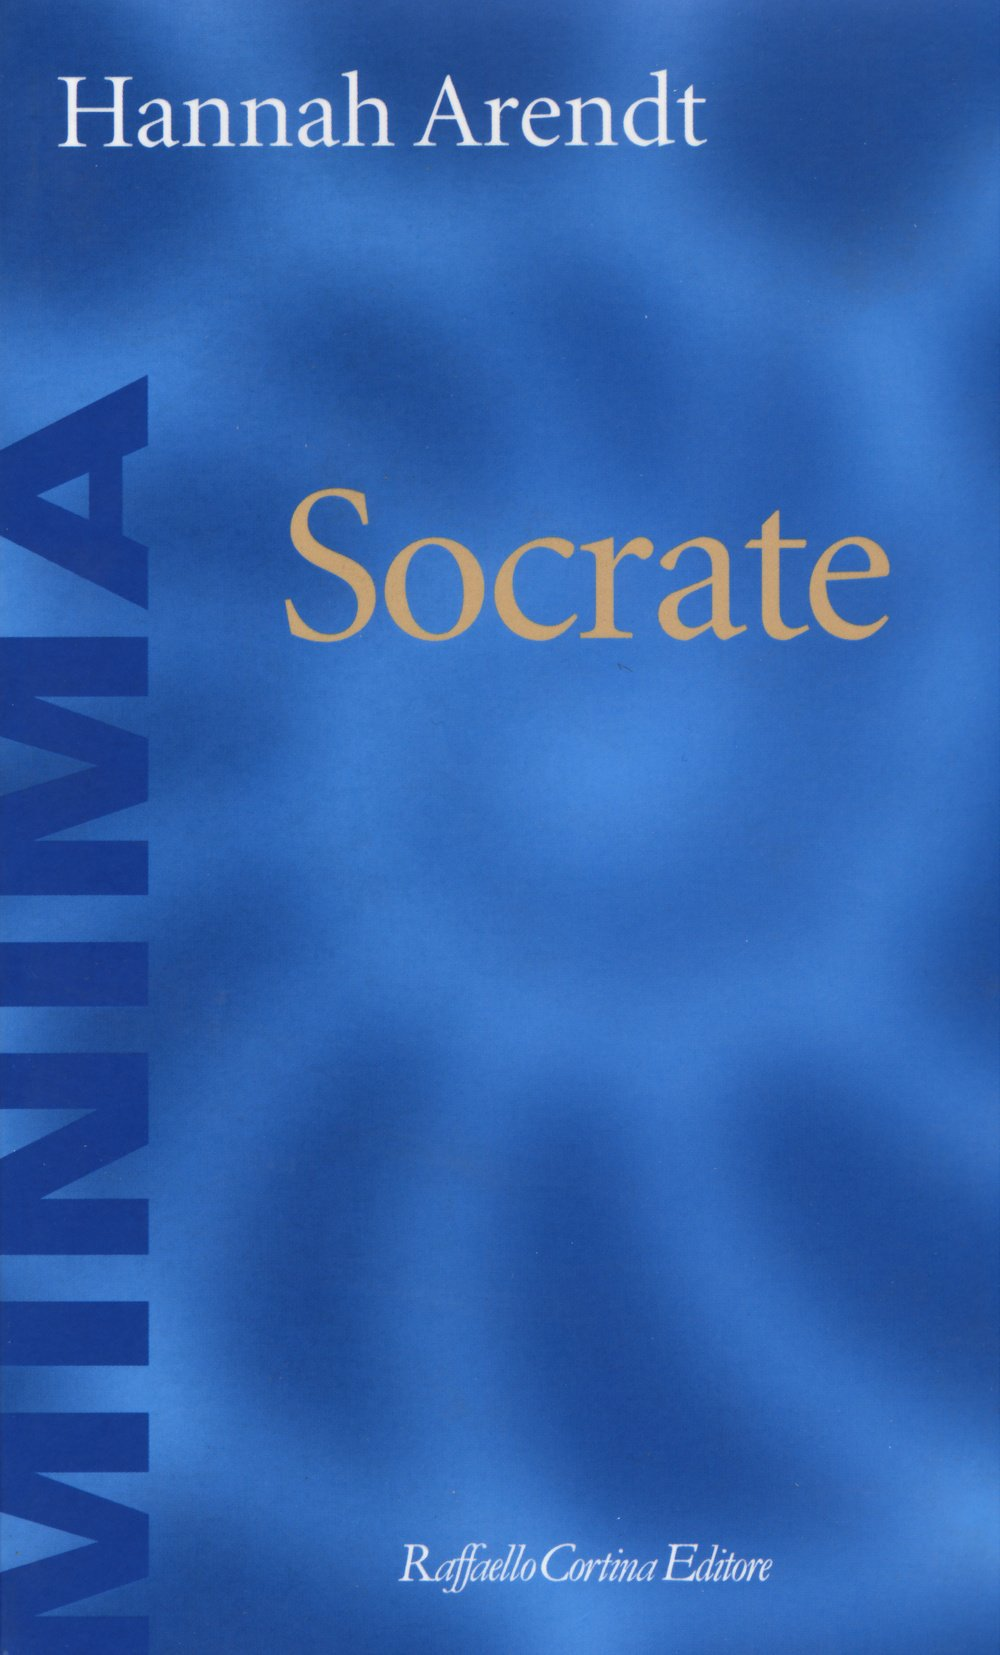 socrate-harendt_cover-book